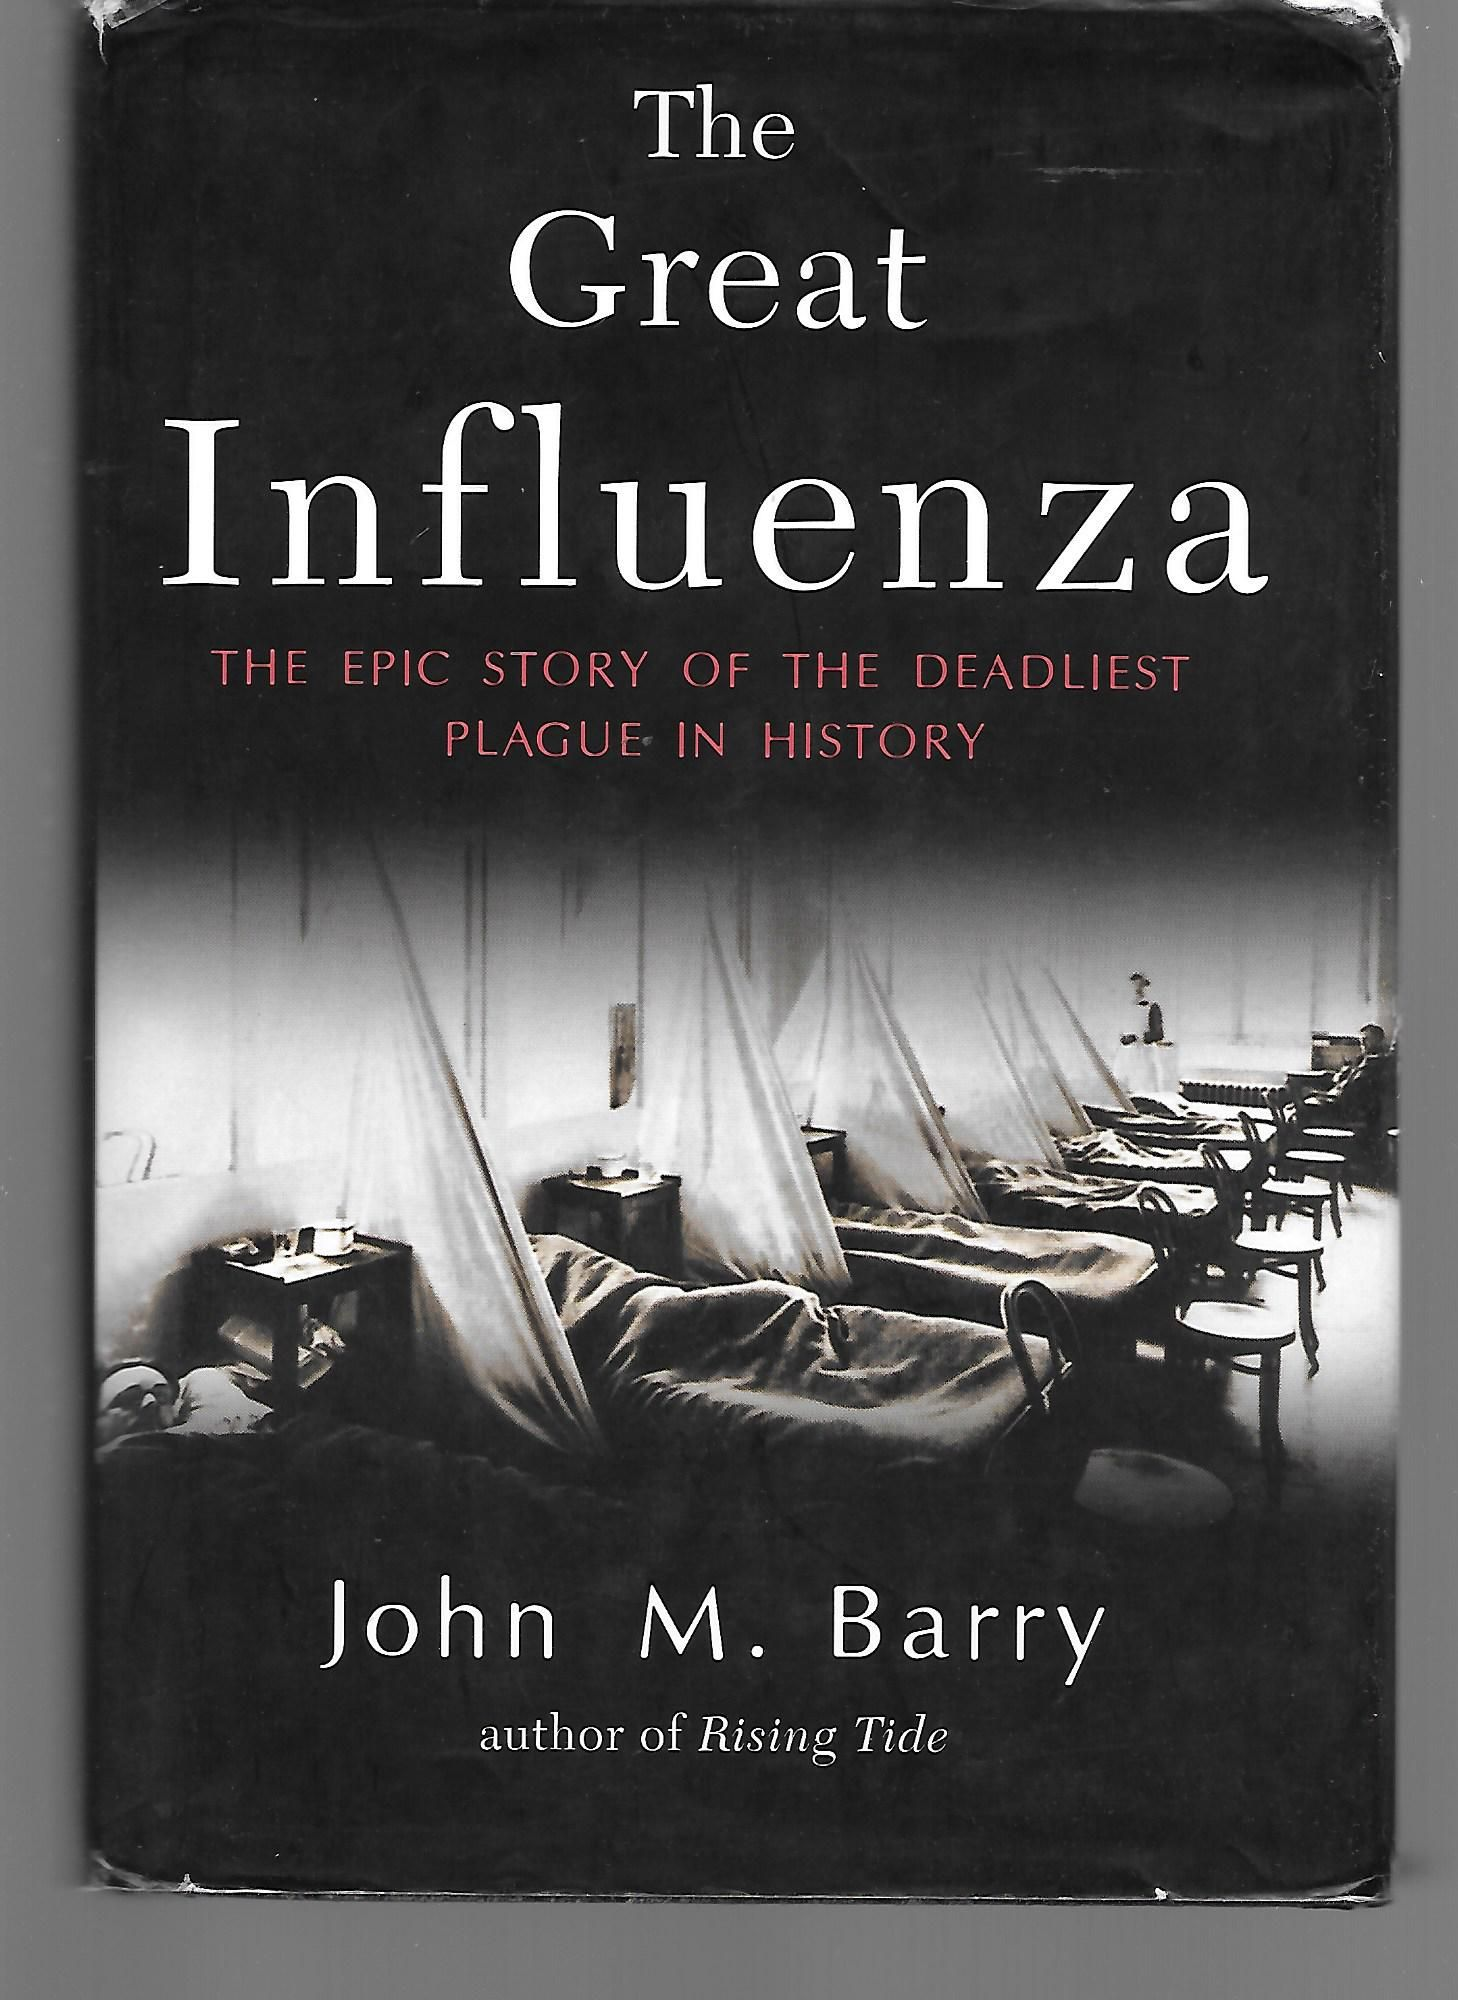 Assignment helpthe great influenza john m barry essay